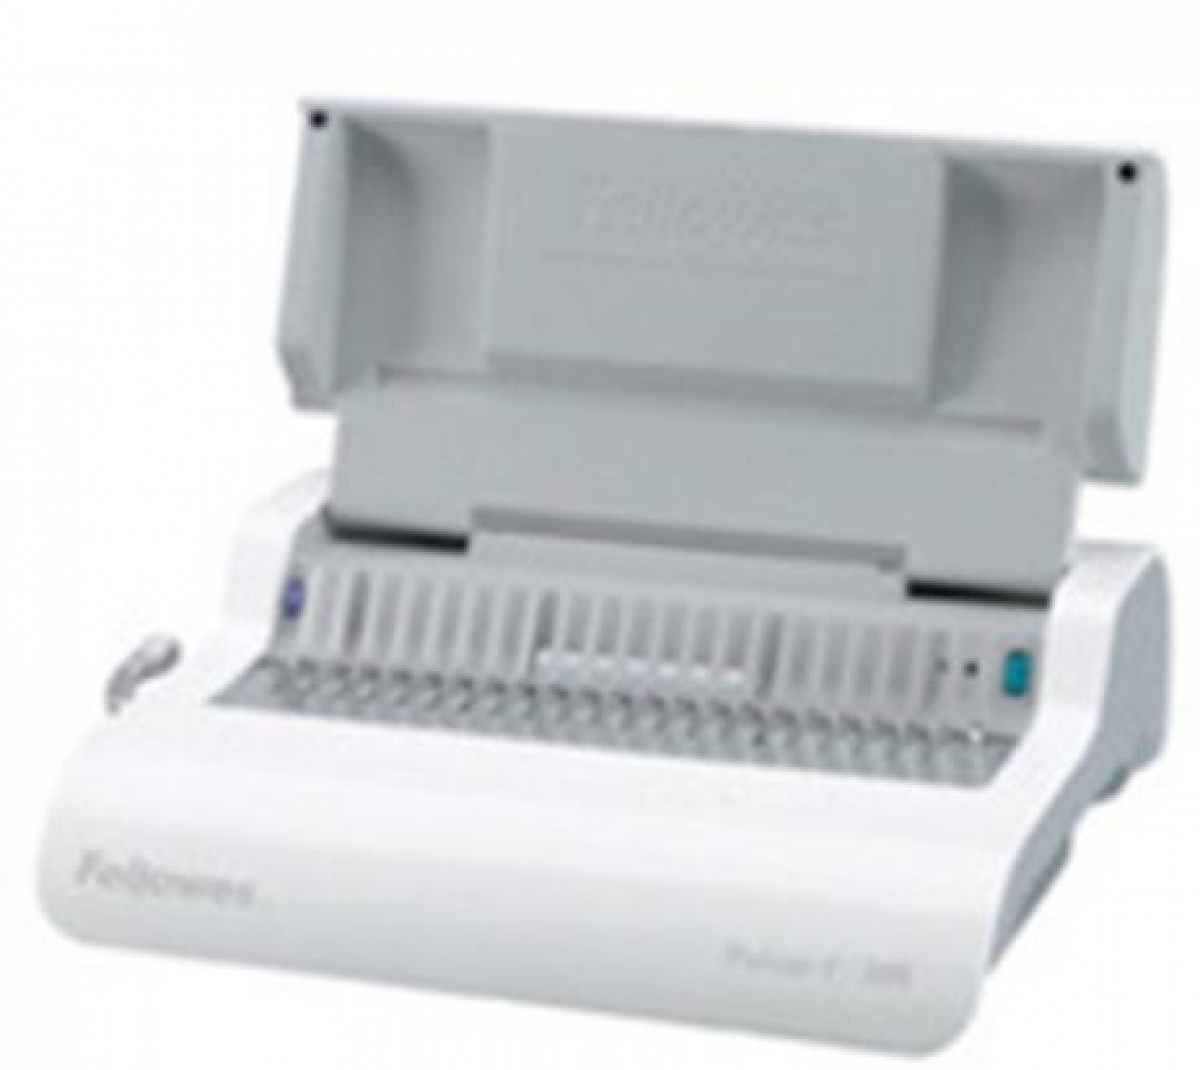 Binder Fellowes Pulsar-E 300 5620701